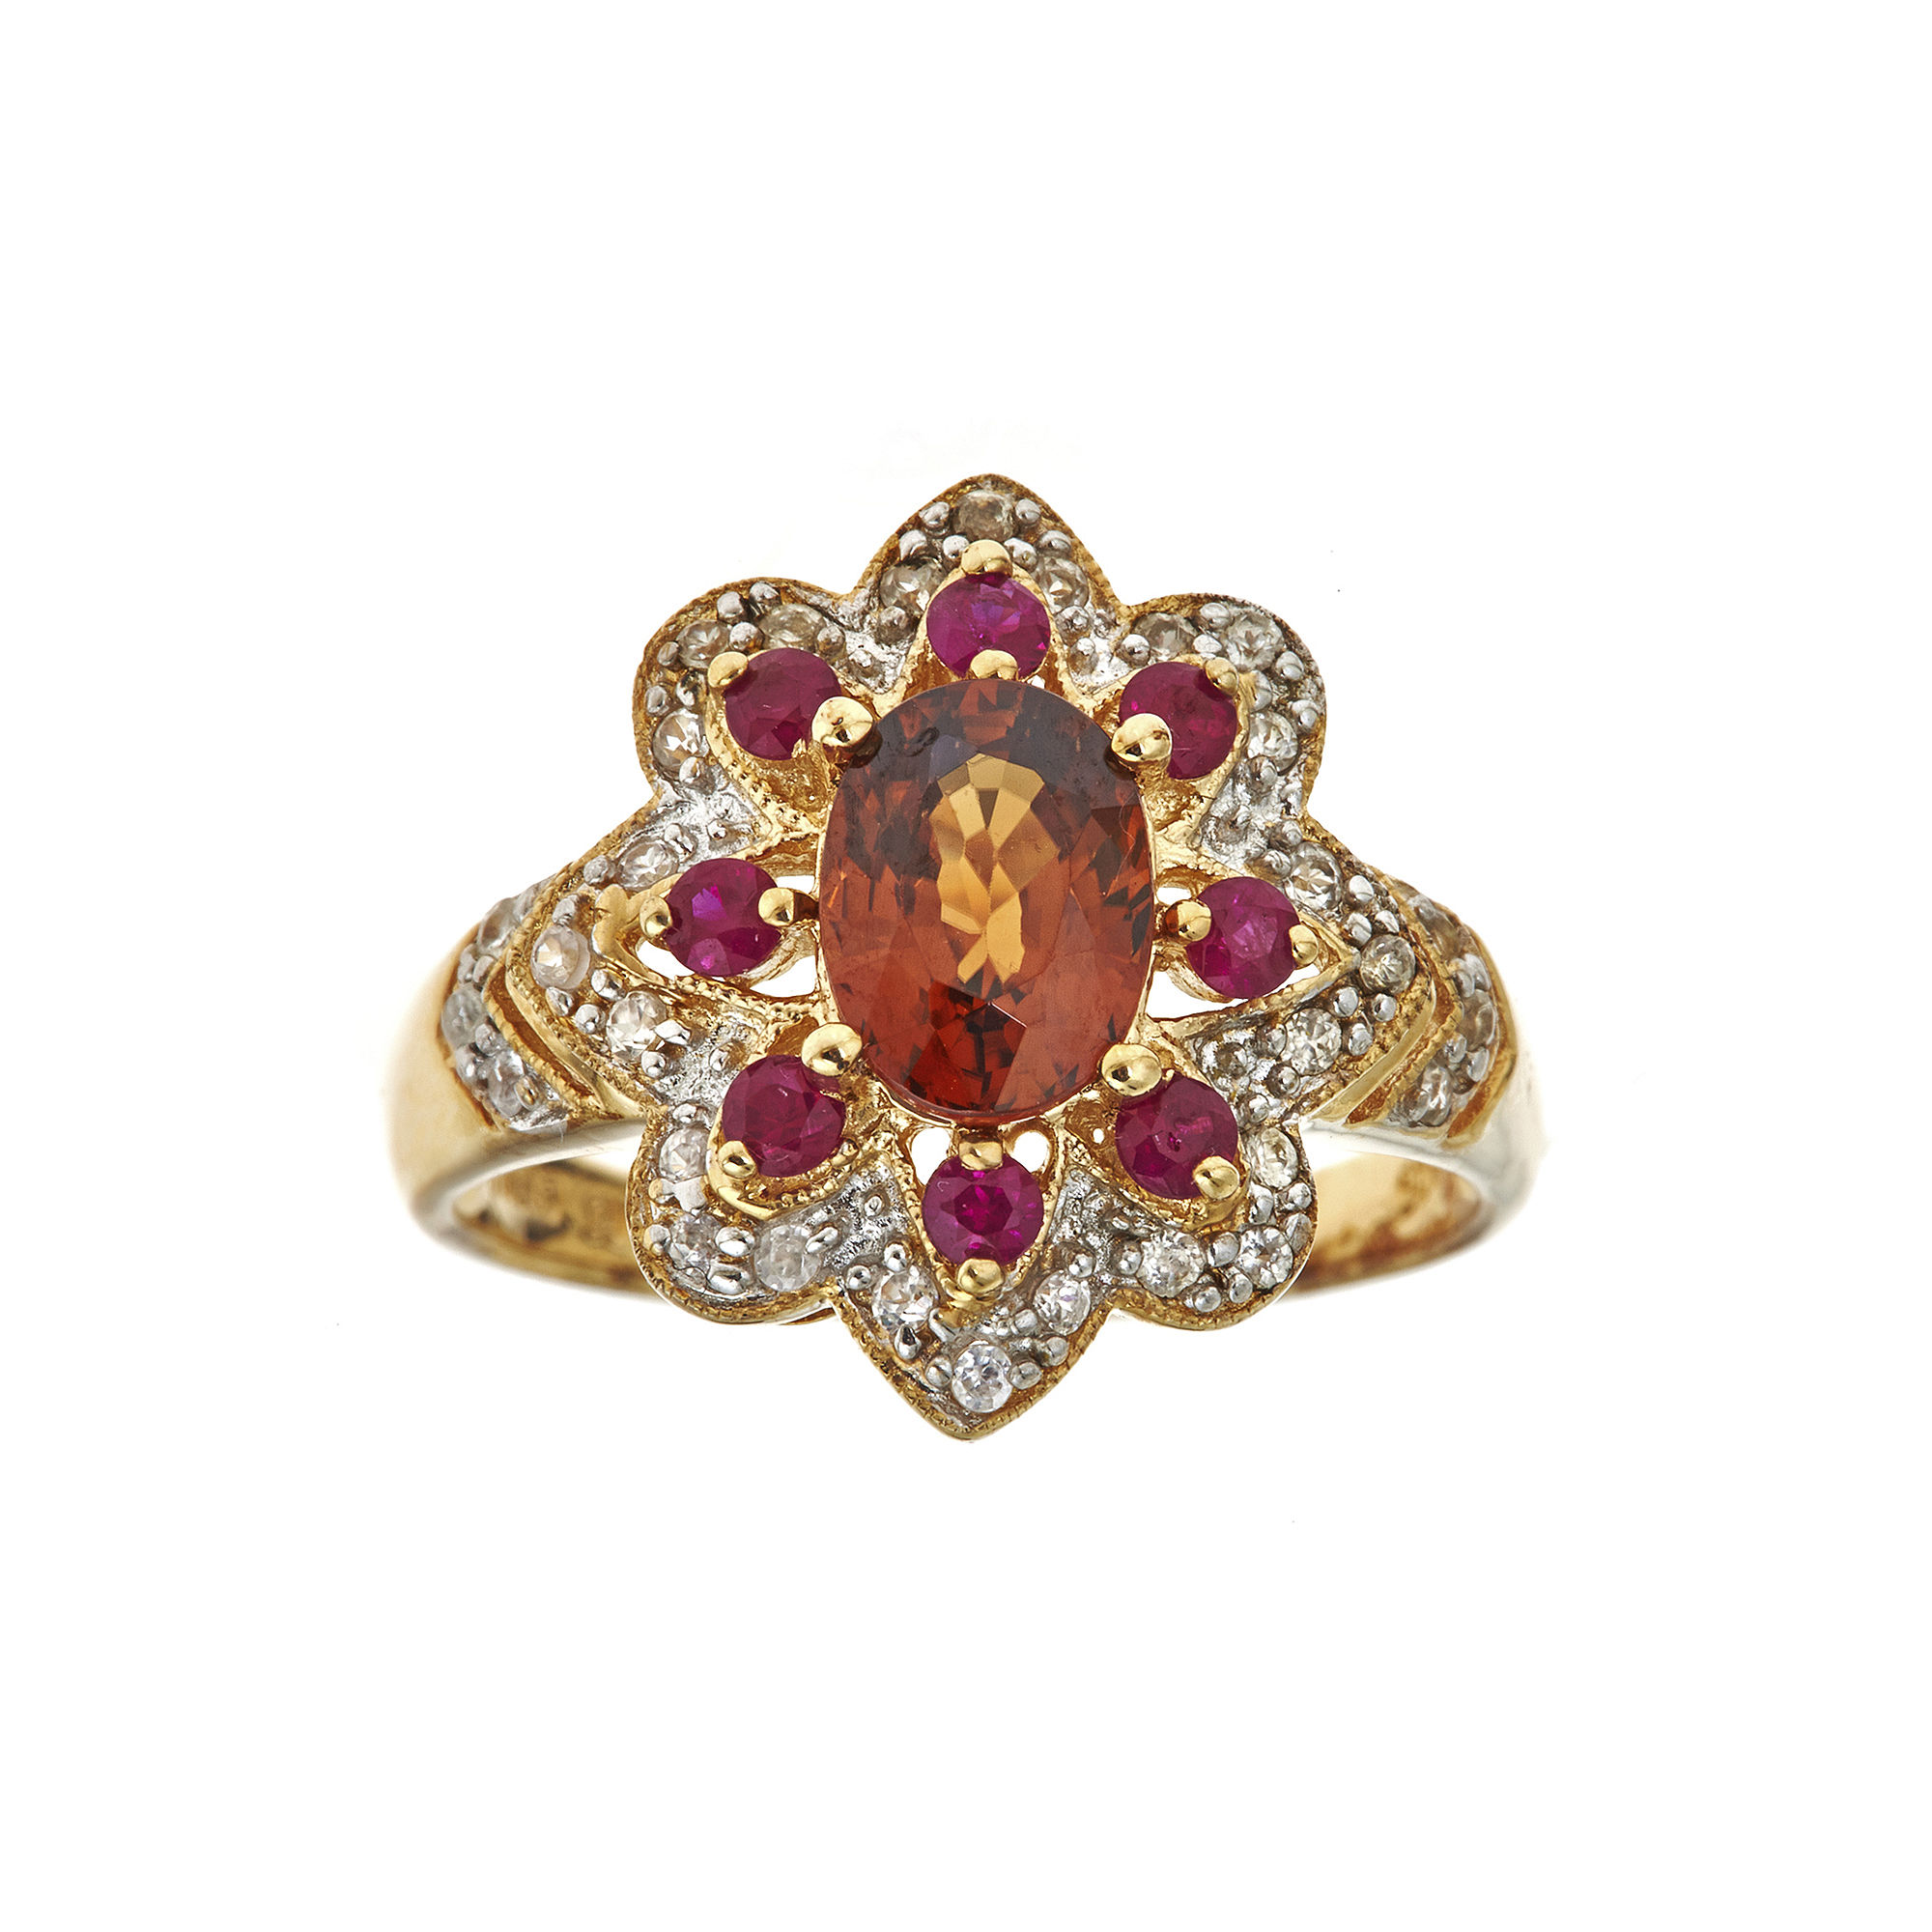 LIMITED QUANTITIES Genuine Brown Zircon and Lead Glass-Filled Hot Pink Ruby Flower Ring